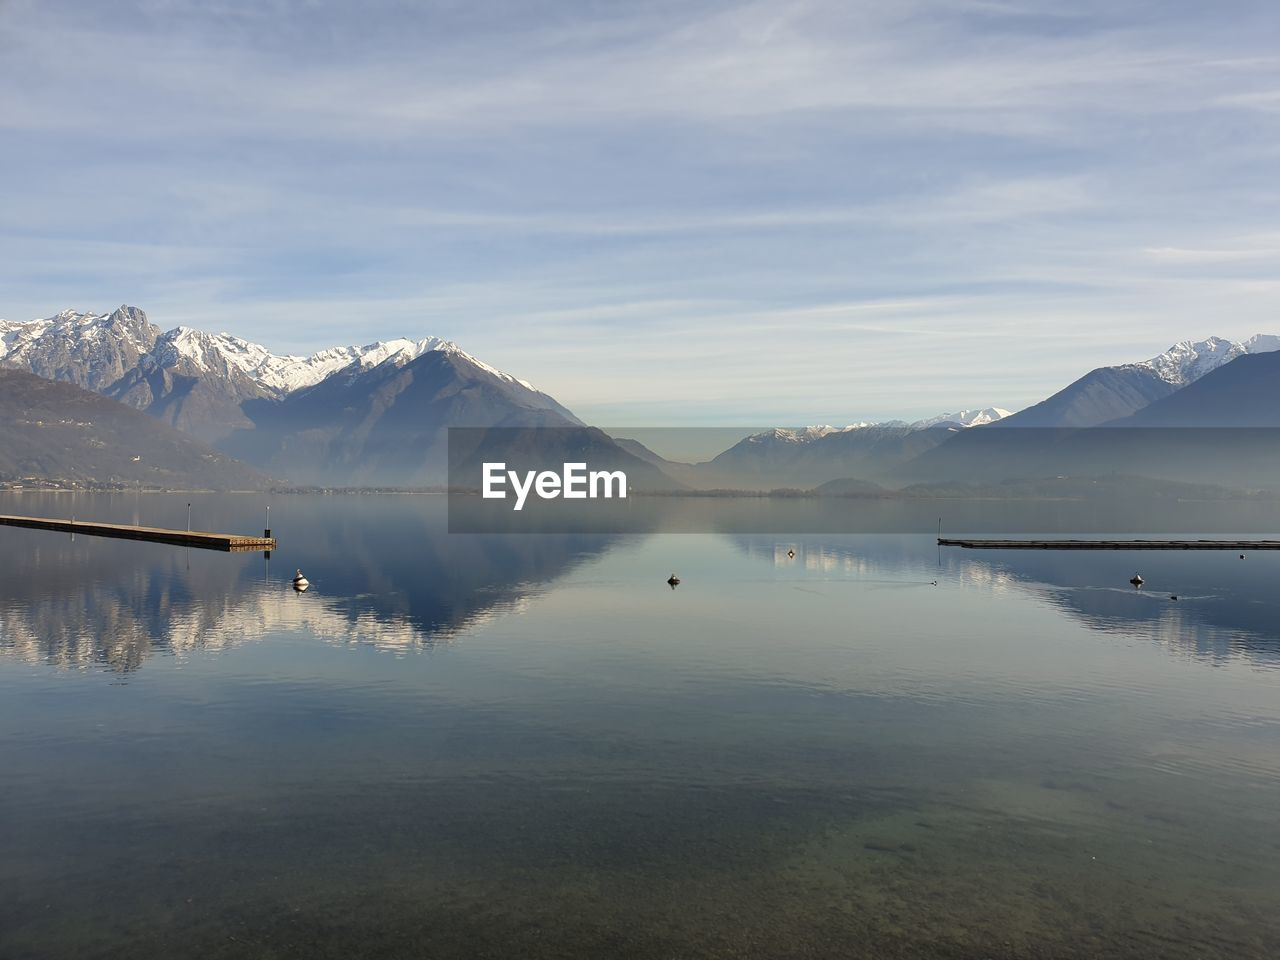 water, scenics - nature, beauty in nature, mountain, sky, tranquil scene, reflection, cold temperature, lake, tranquility, winter, cloud - sky, non-urban scene, waterfront, mountain range, idyllic, nature, snow, no people, snowcapped mountain, ice, reflection lake